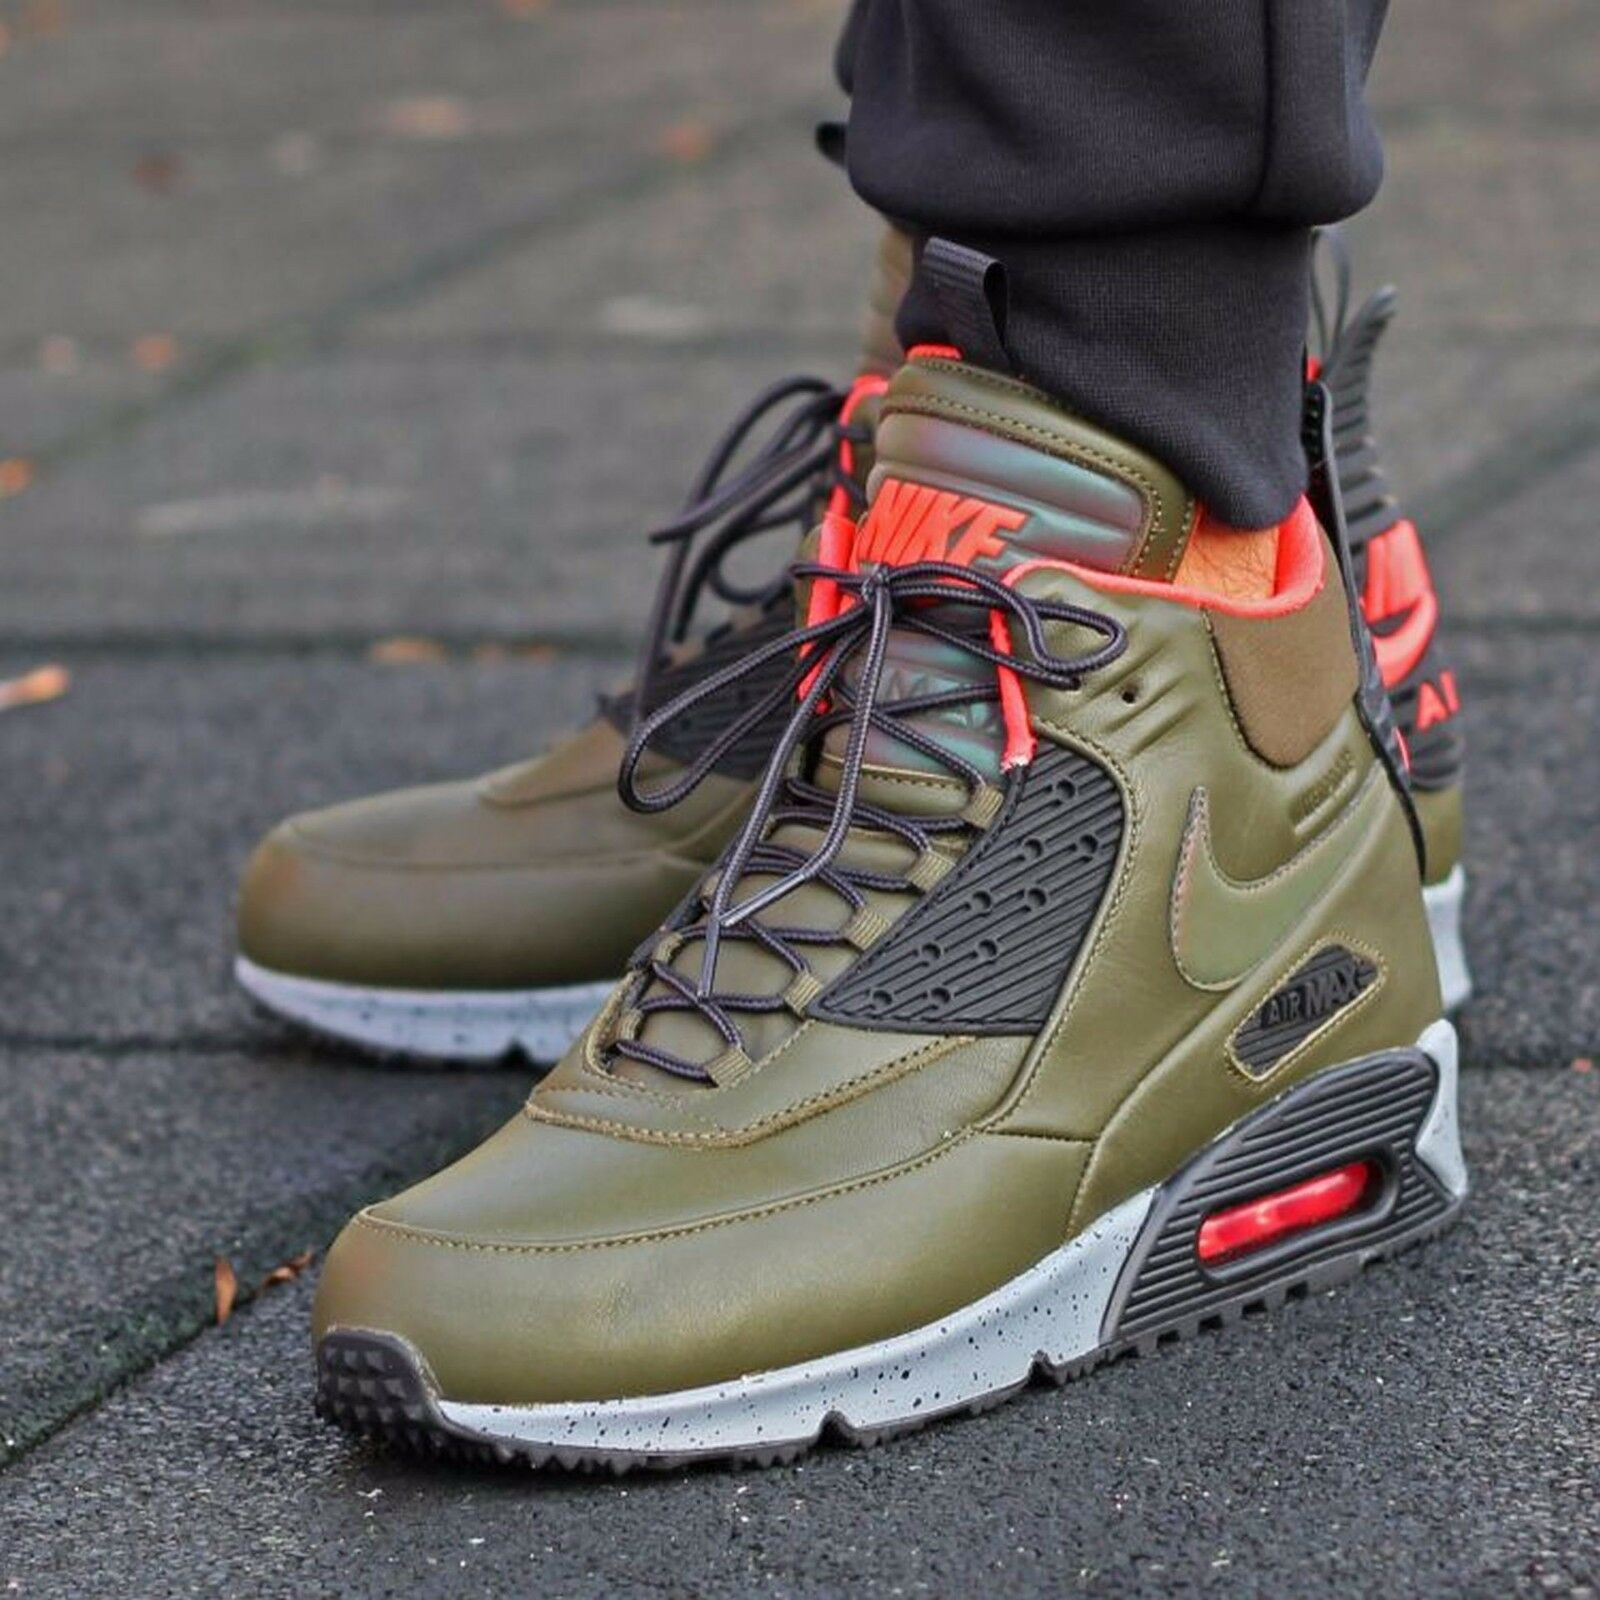 NIKE Air Max 90 Sneakerboot Mens Shoes Sz 8 684714-300  Dark Loden/Black